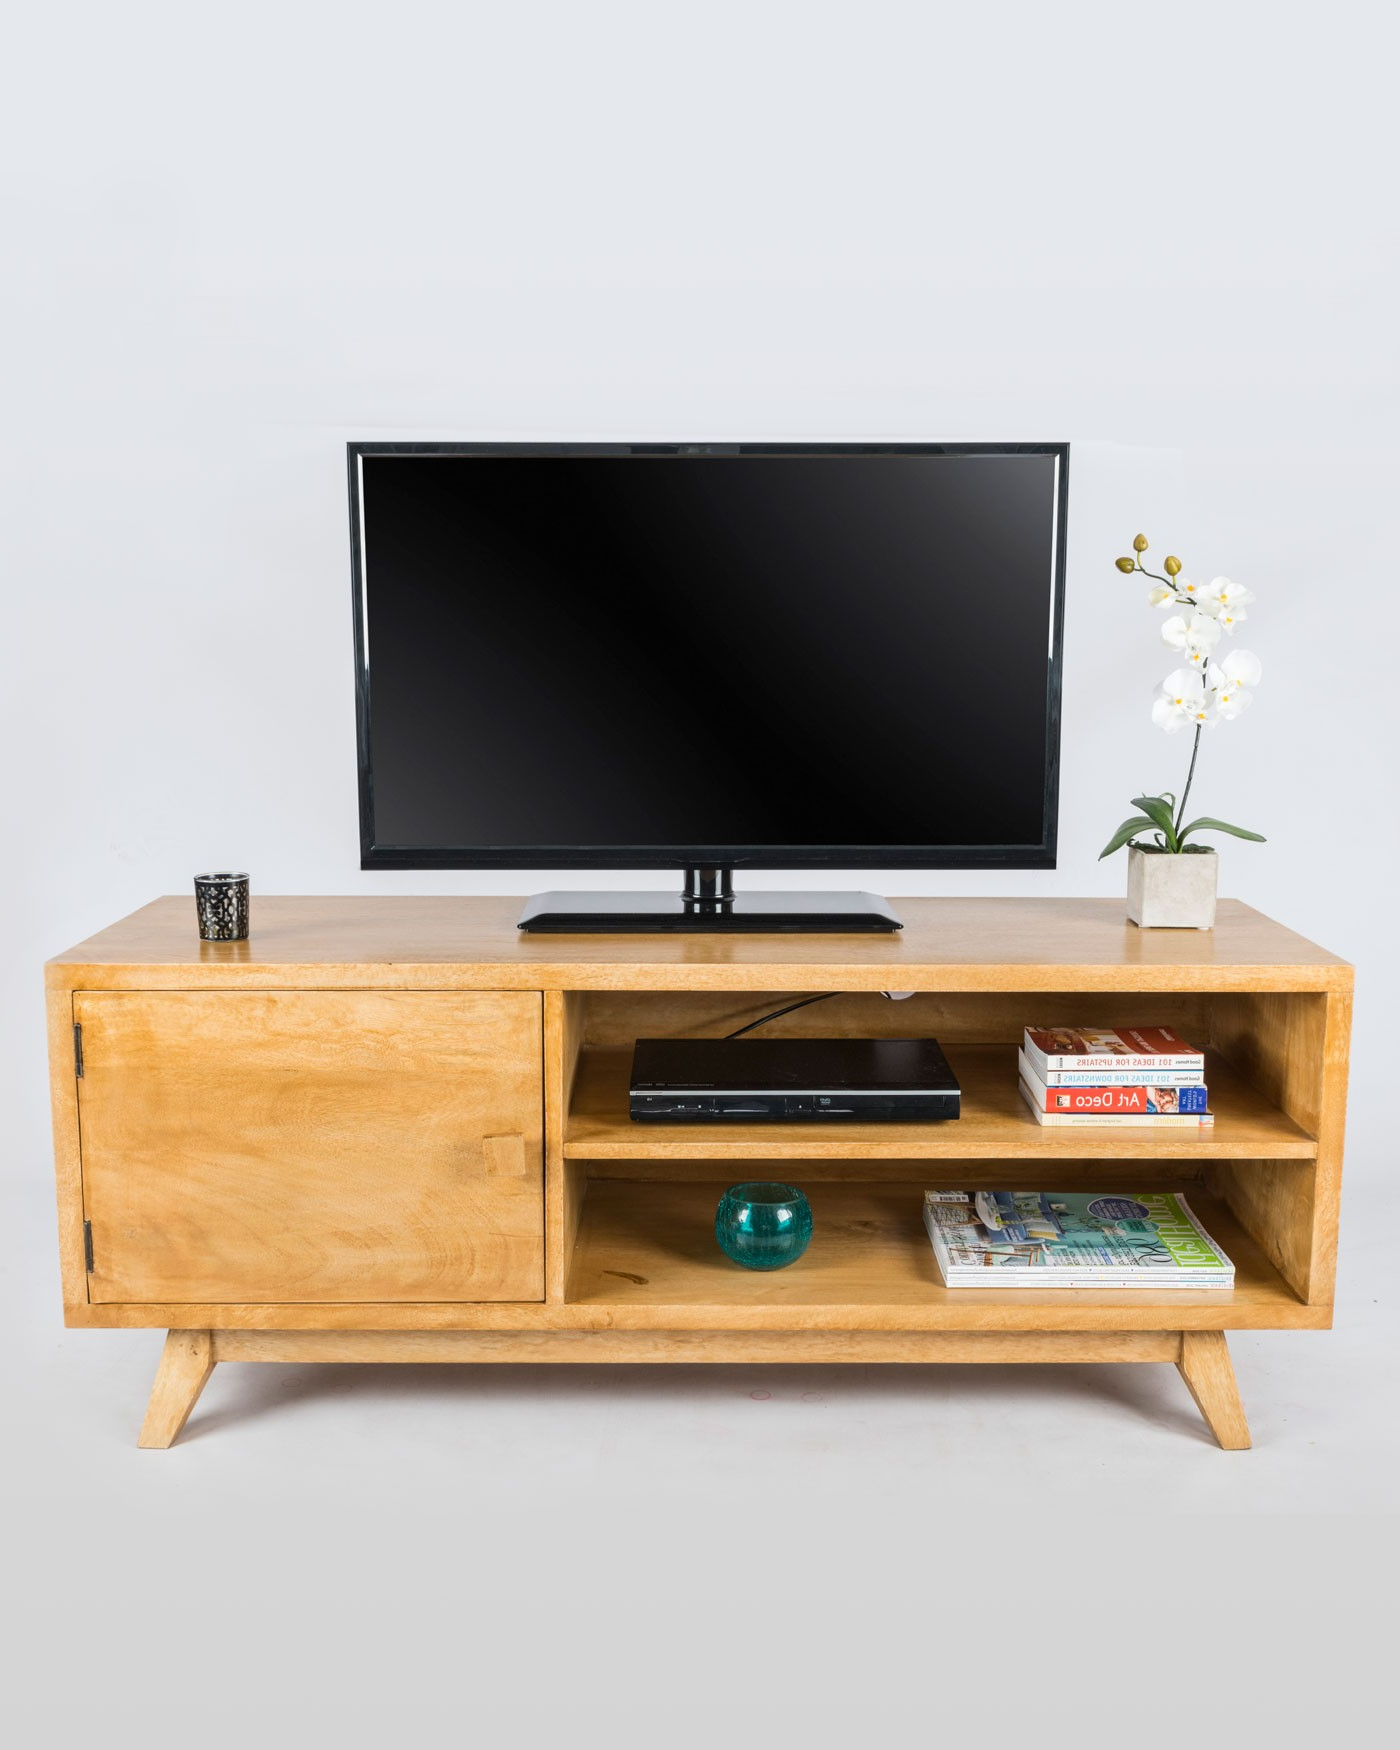 [%Retro Wooden Tv Stand With Shelf 100% Solid Mango Wood Oak Shade Within Most Current Mango Wood Tv Stands|Mango Wood Tv Stands With Regard To Widely Used Retro Wooden Tv Stand With Shelf 100% Solid Mango Wood Oak Shade|Famous Mango Wood Tv Stands In Retro Wooden Tv Stand With Shelf 100% Solid Mango Wood Oak Shade|Widely Used Retro Wooden Tv Stand With Shelf 100% Solid Mango Wood Oak Shade Inside Mango Wood Tv Stands%] (View 5 of 20)